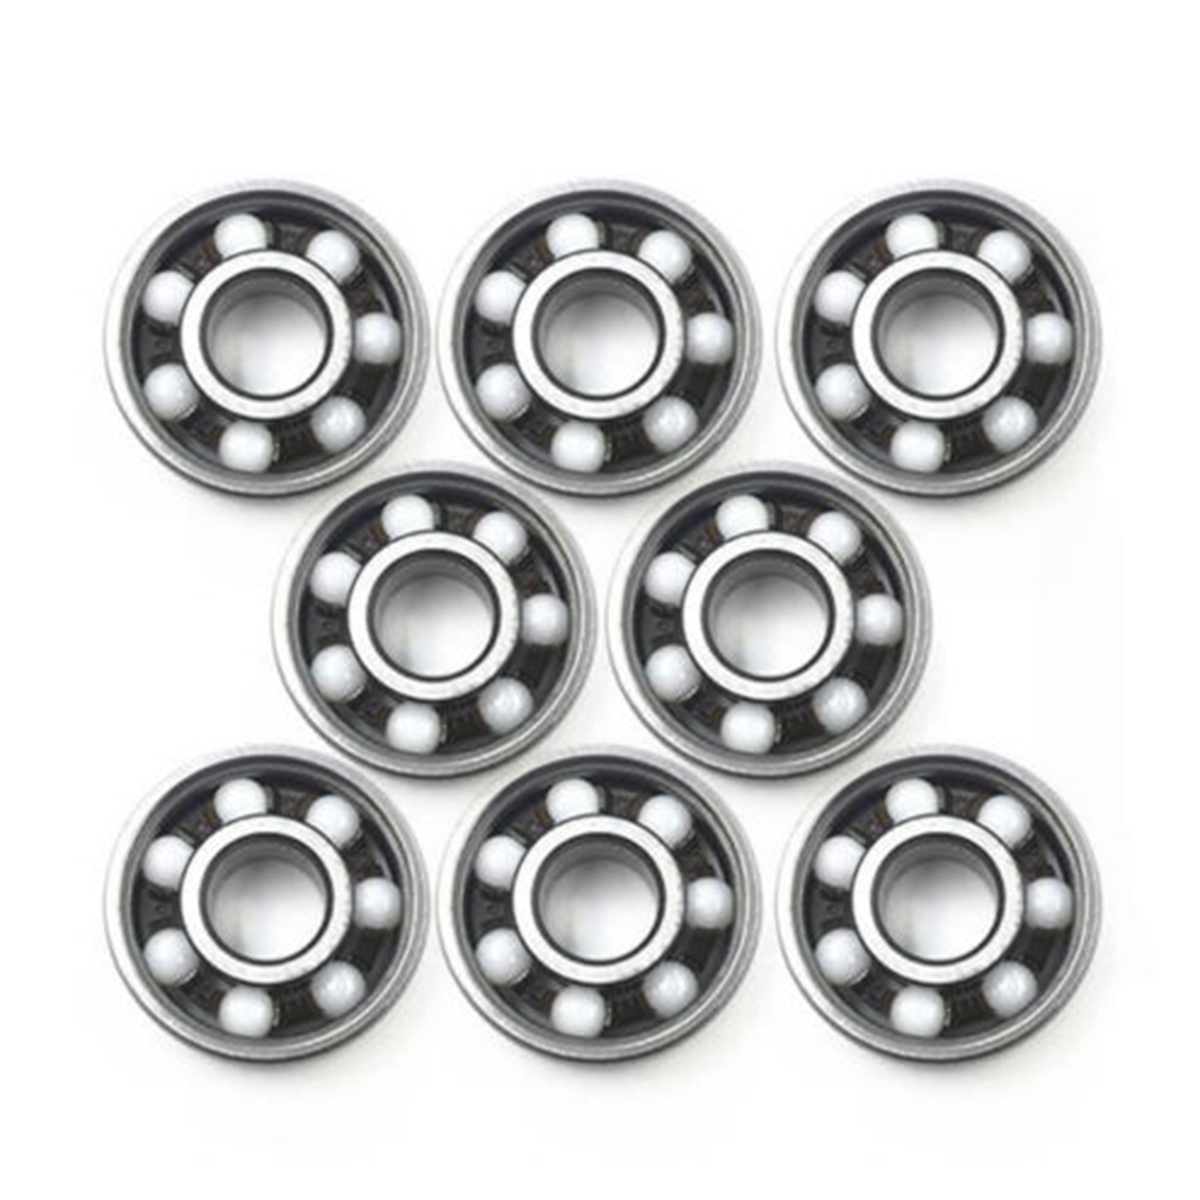 Mayitr New 608 Ball Bearing Spinner Mayitr Ceramic Speed Ball Bearings For Home Tools